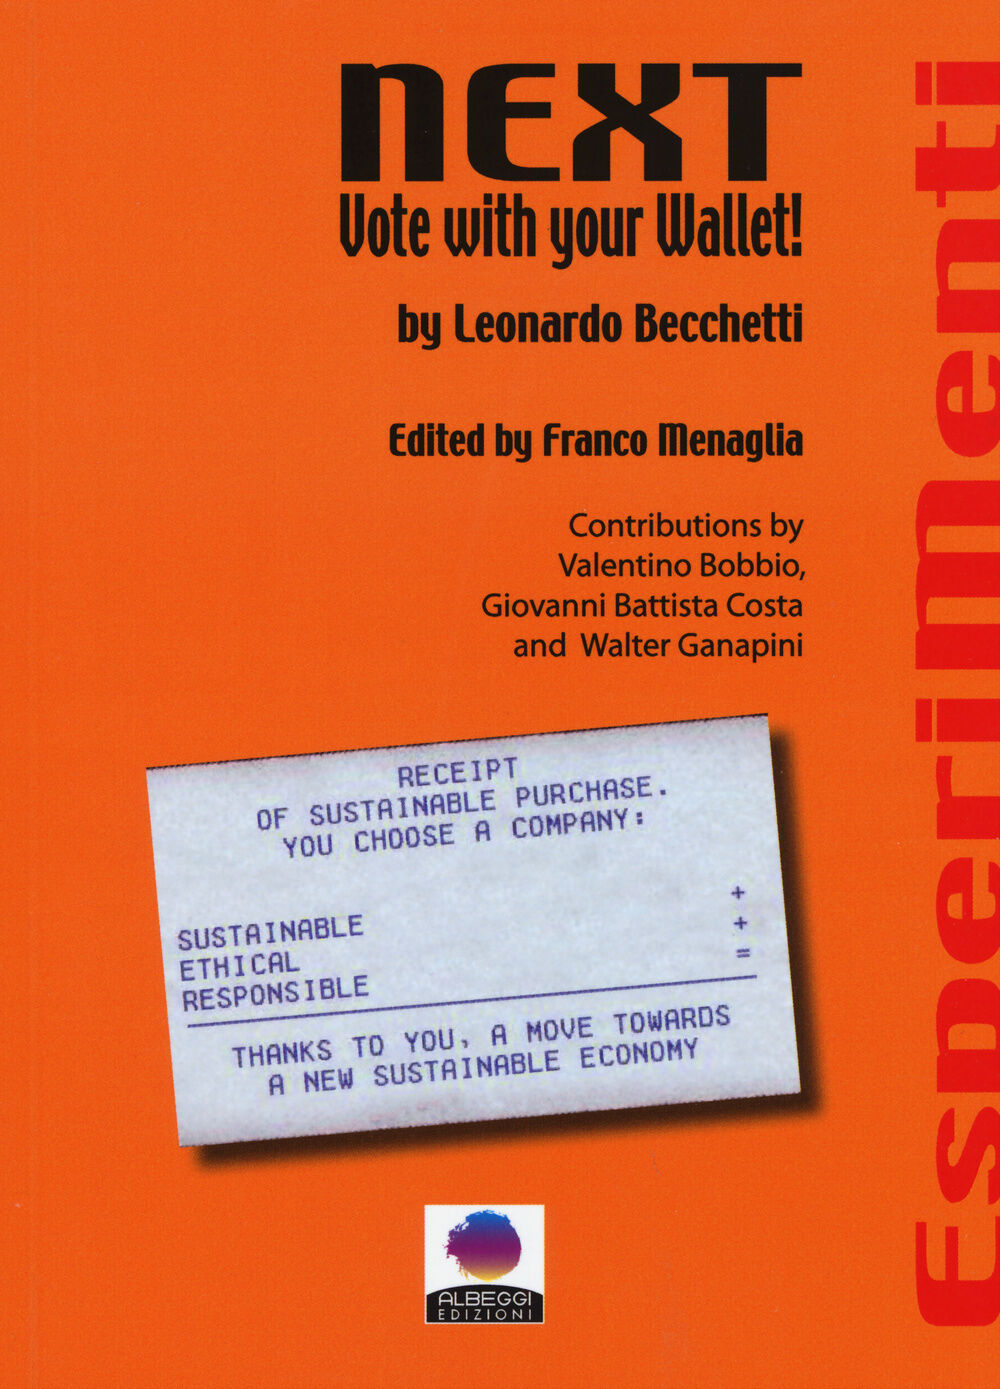 Next, vote with your wallet!